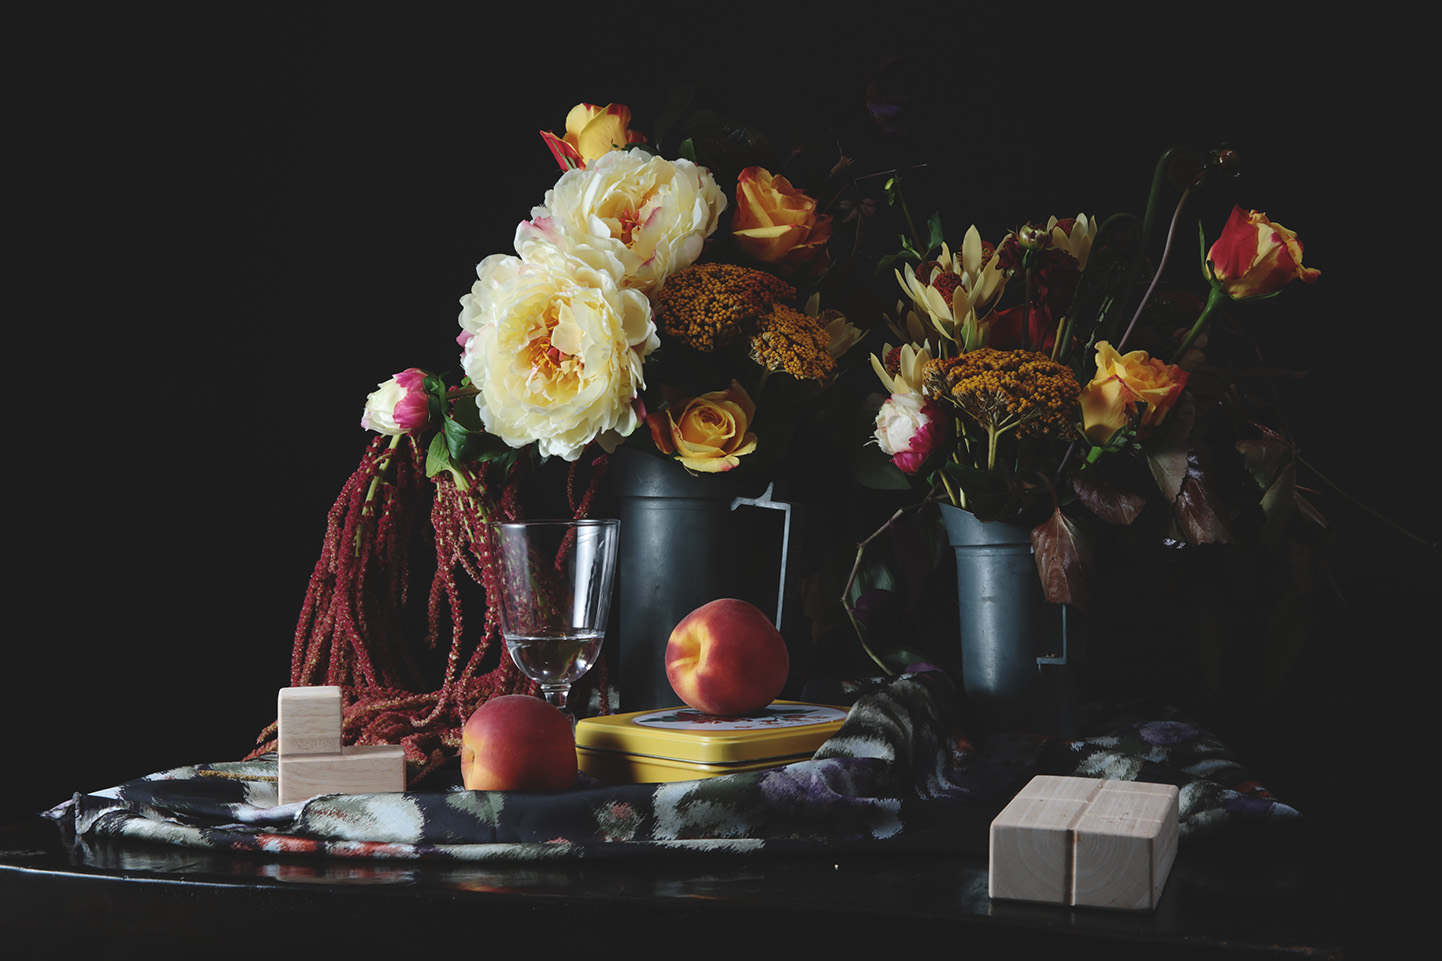 Still Life Floral Study with Gemma Hayden Blest